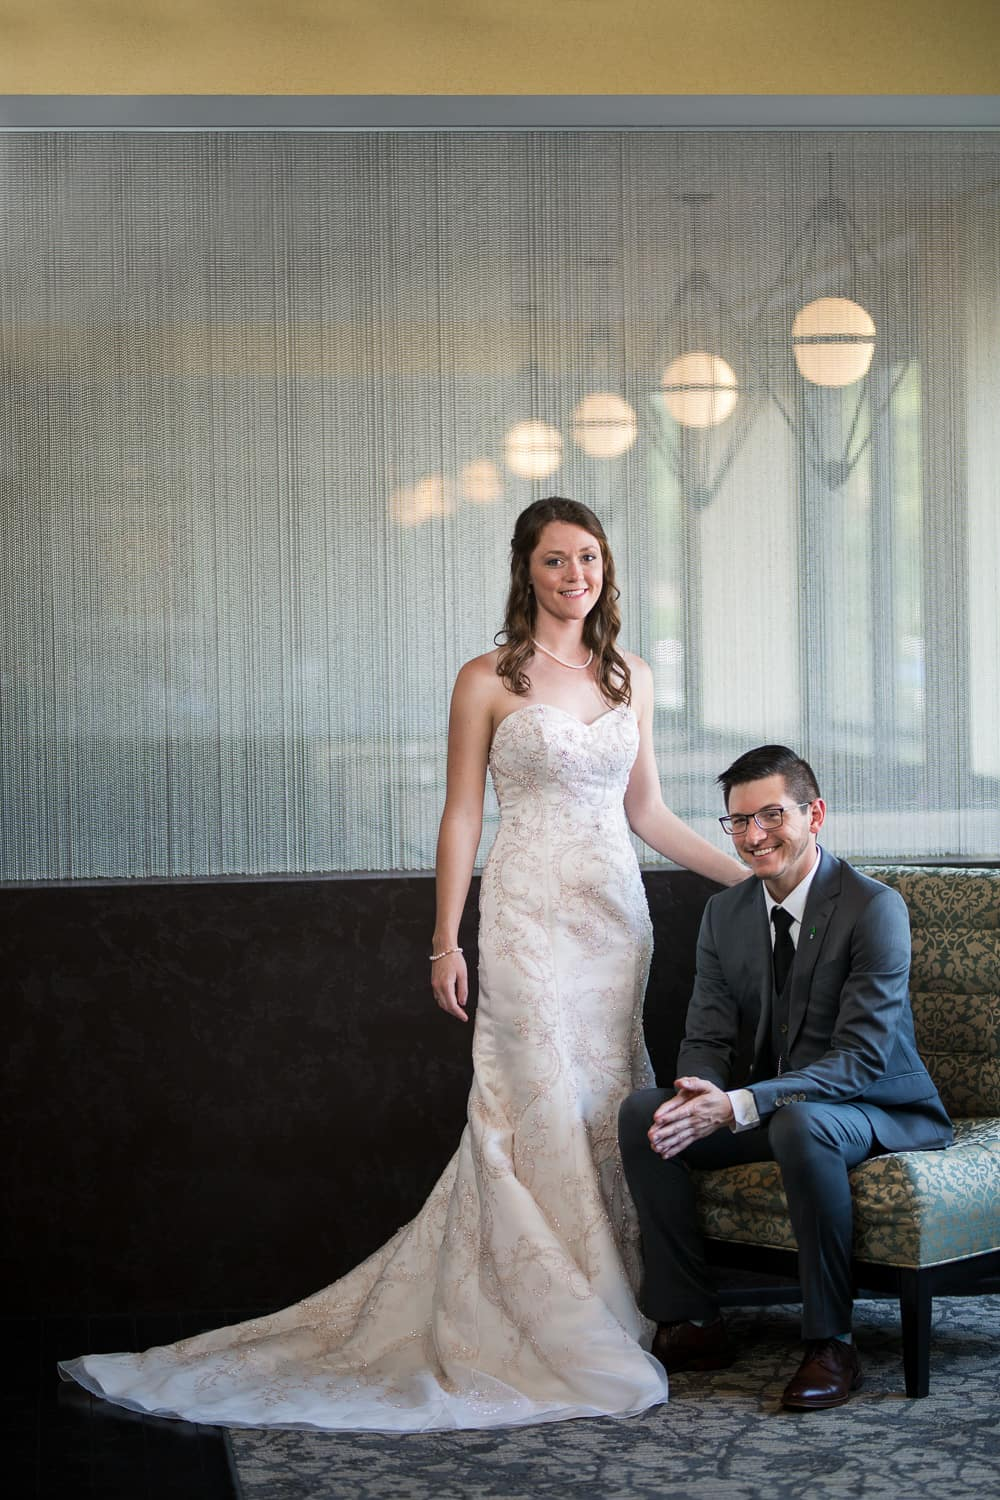 groom in grey suit is sitting while his tall bride stands next to him. a curtain of metal beads is behind them.